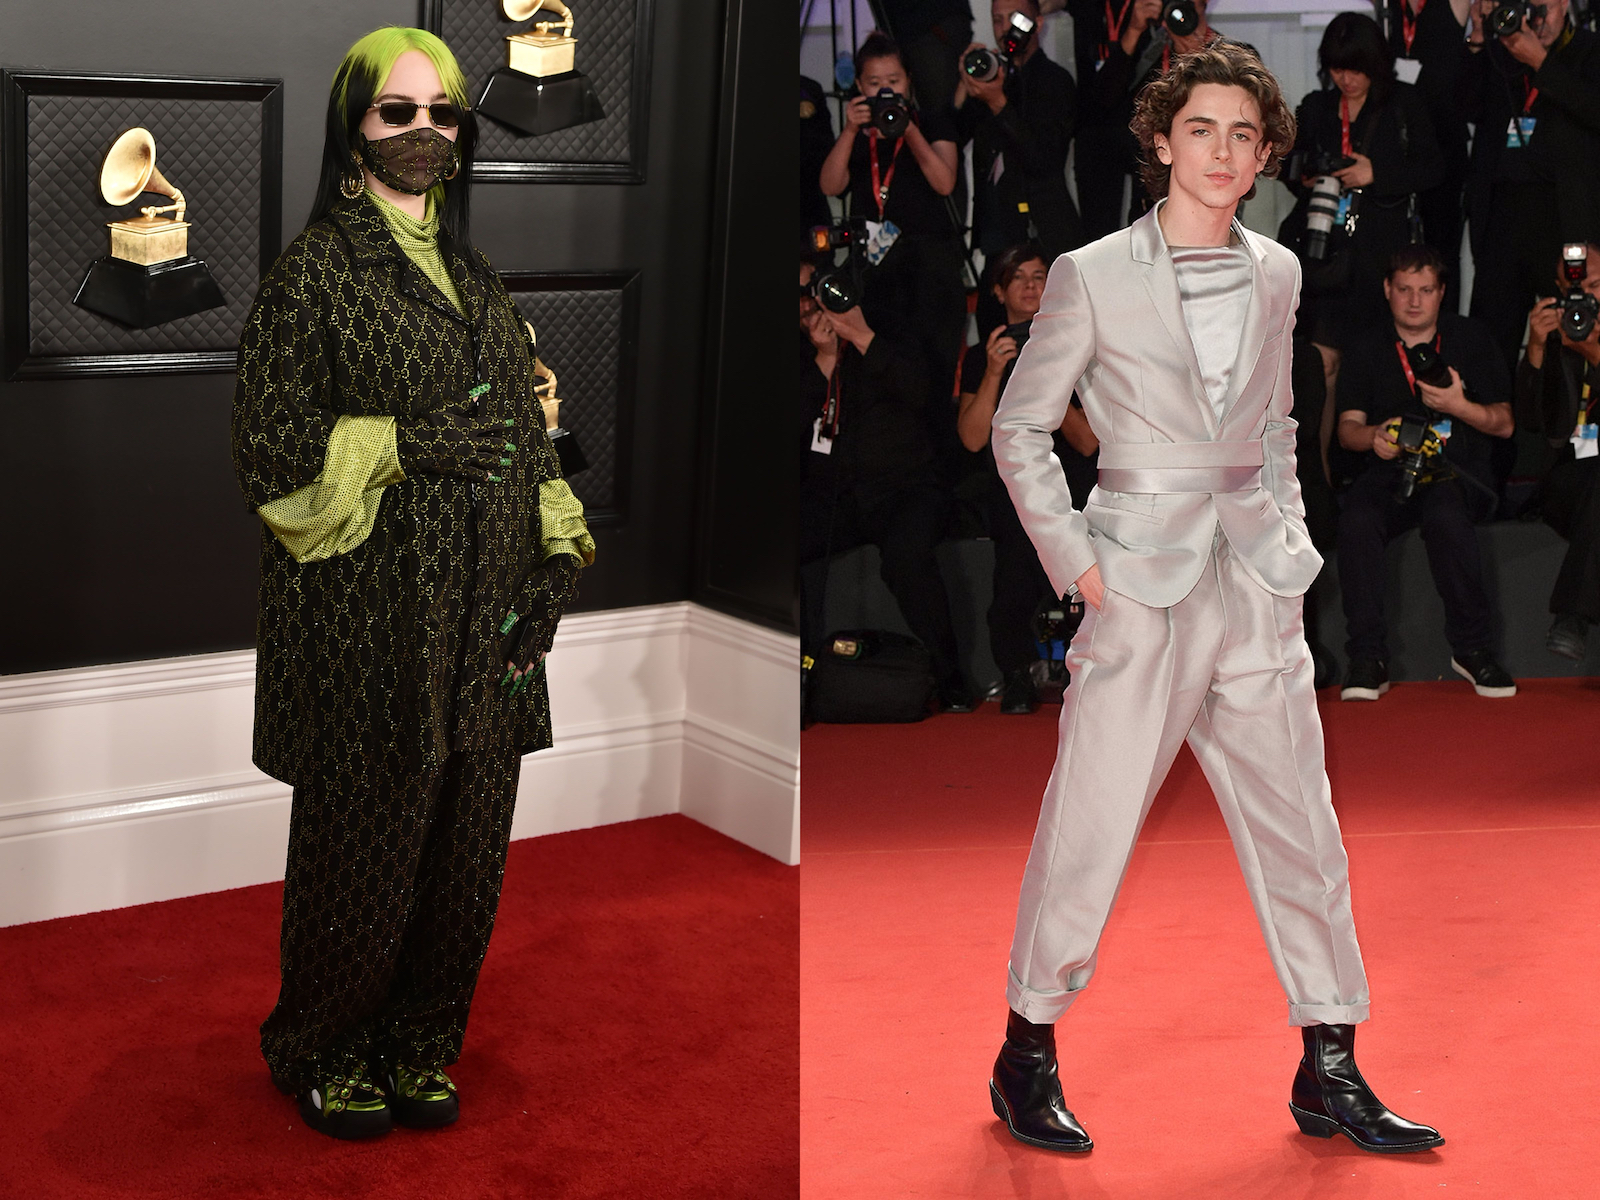 Met Gala co-chairs Billie Eilish and Timothee Chalamet will both make an appearance on the red carpet. (Photo credit: Getty Images)